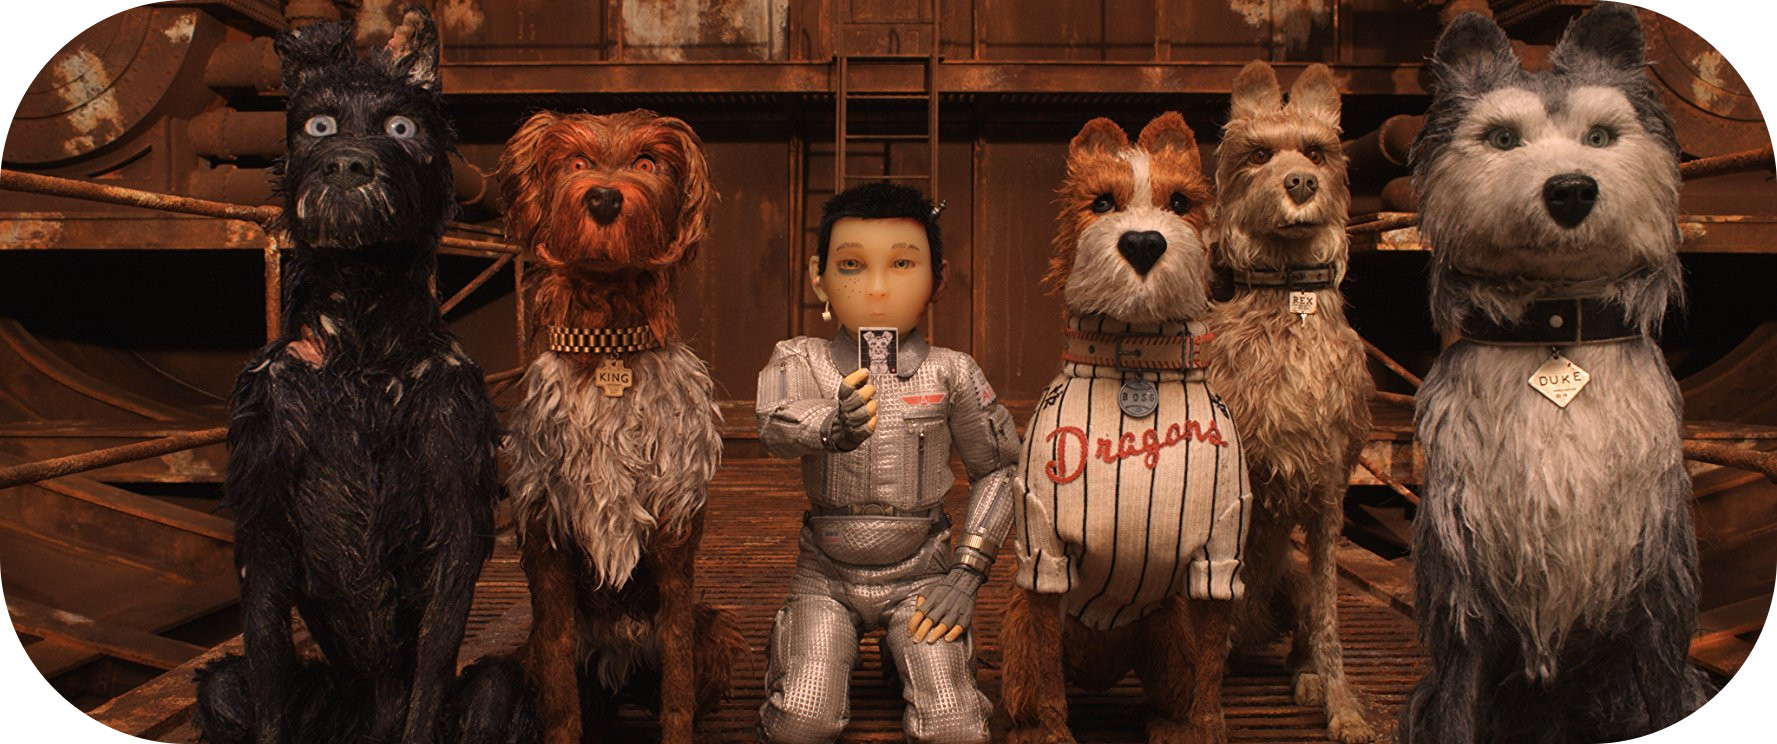 Isle of dogs (W. Anderson)